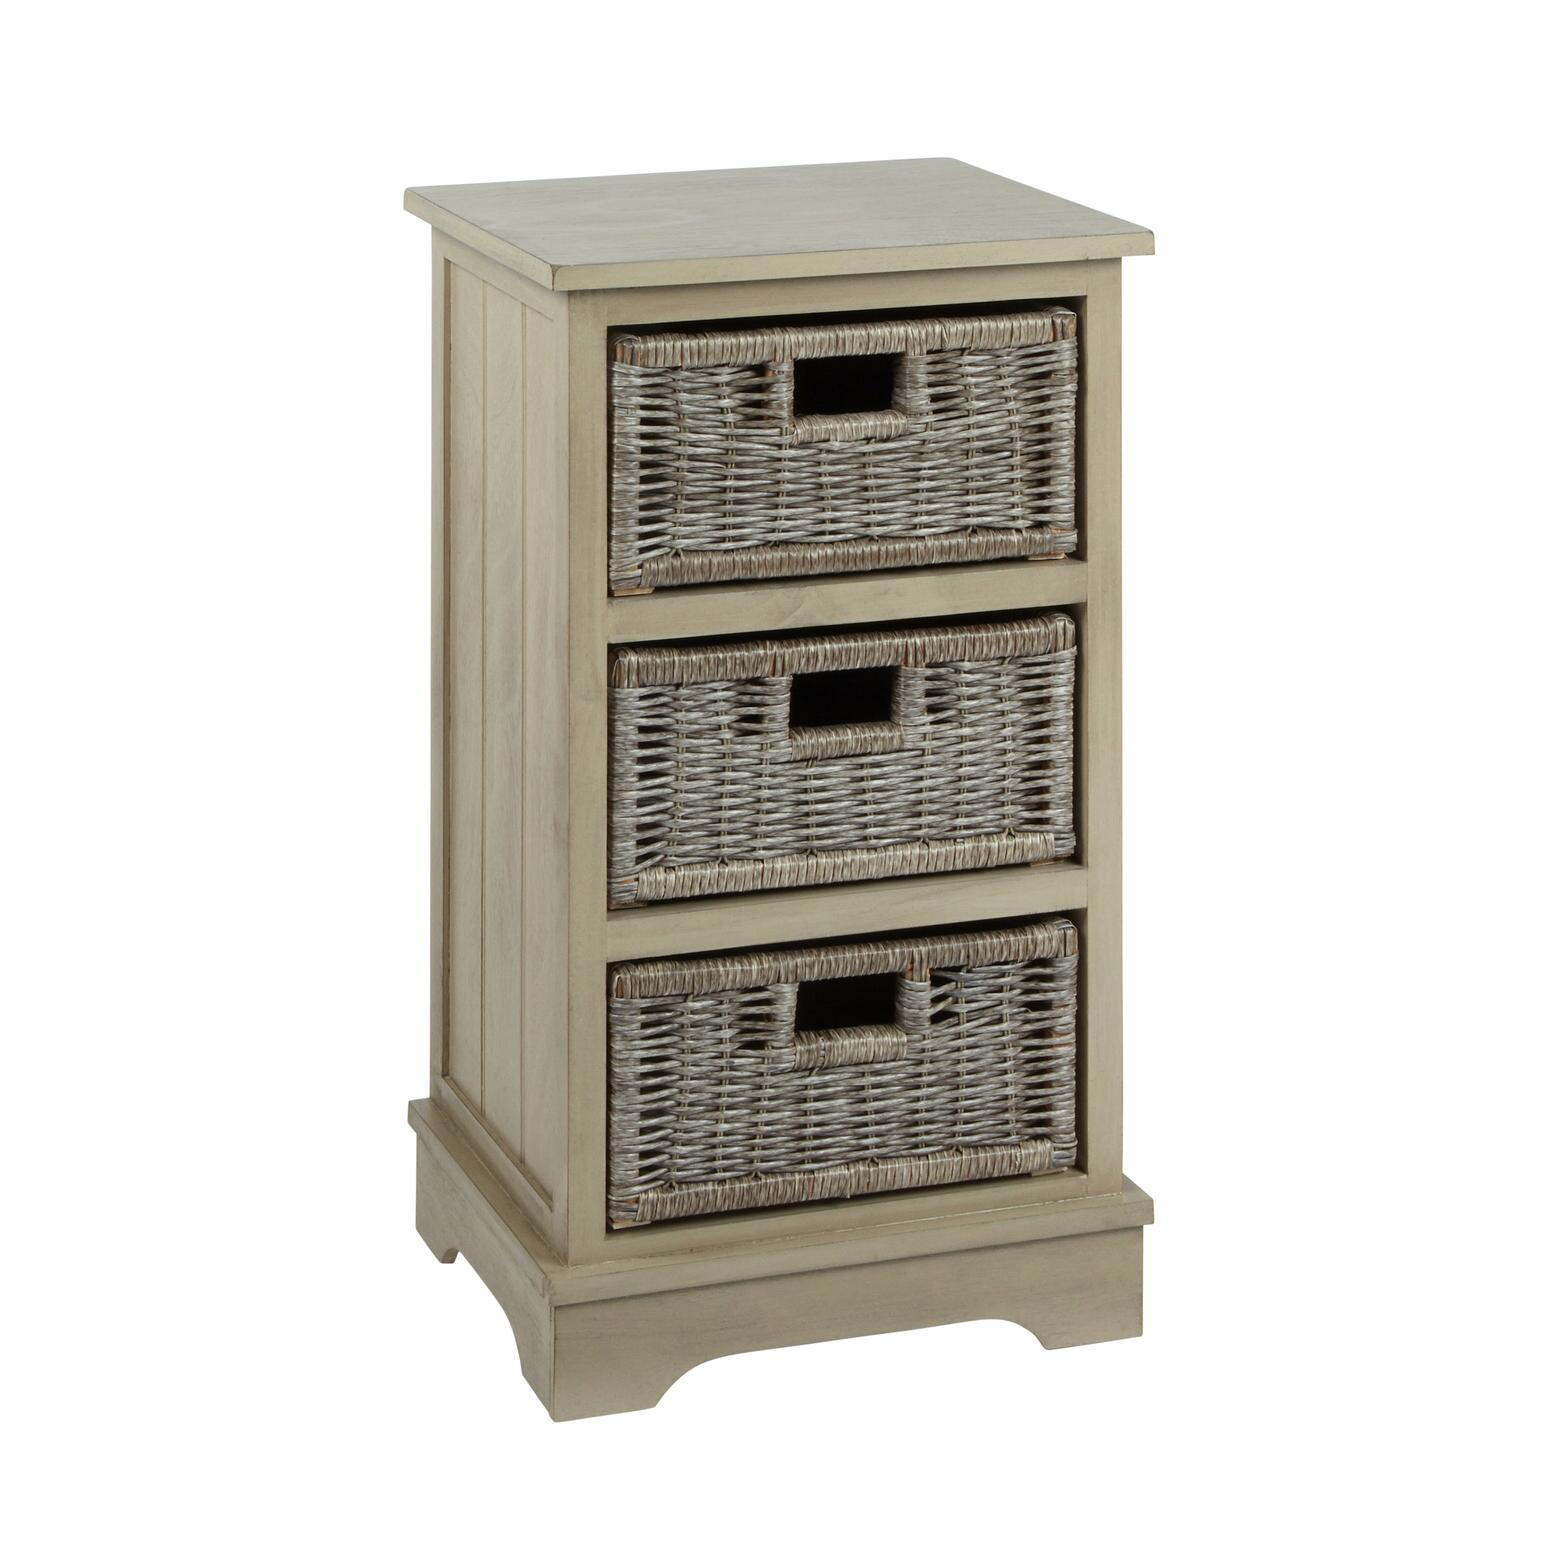 storage cabinet with doors and drawers. Charlotte Gray 3-Basket Storage Cabinet Storage Cabinet With Doors And Drawers